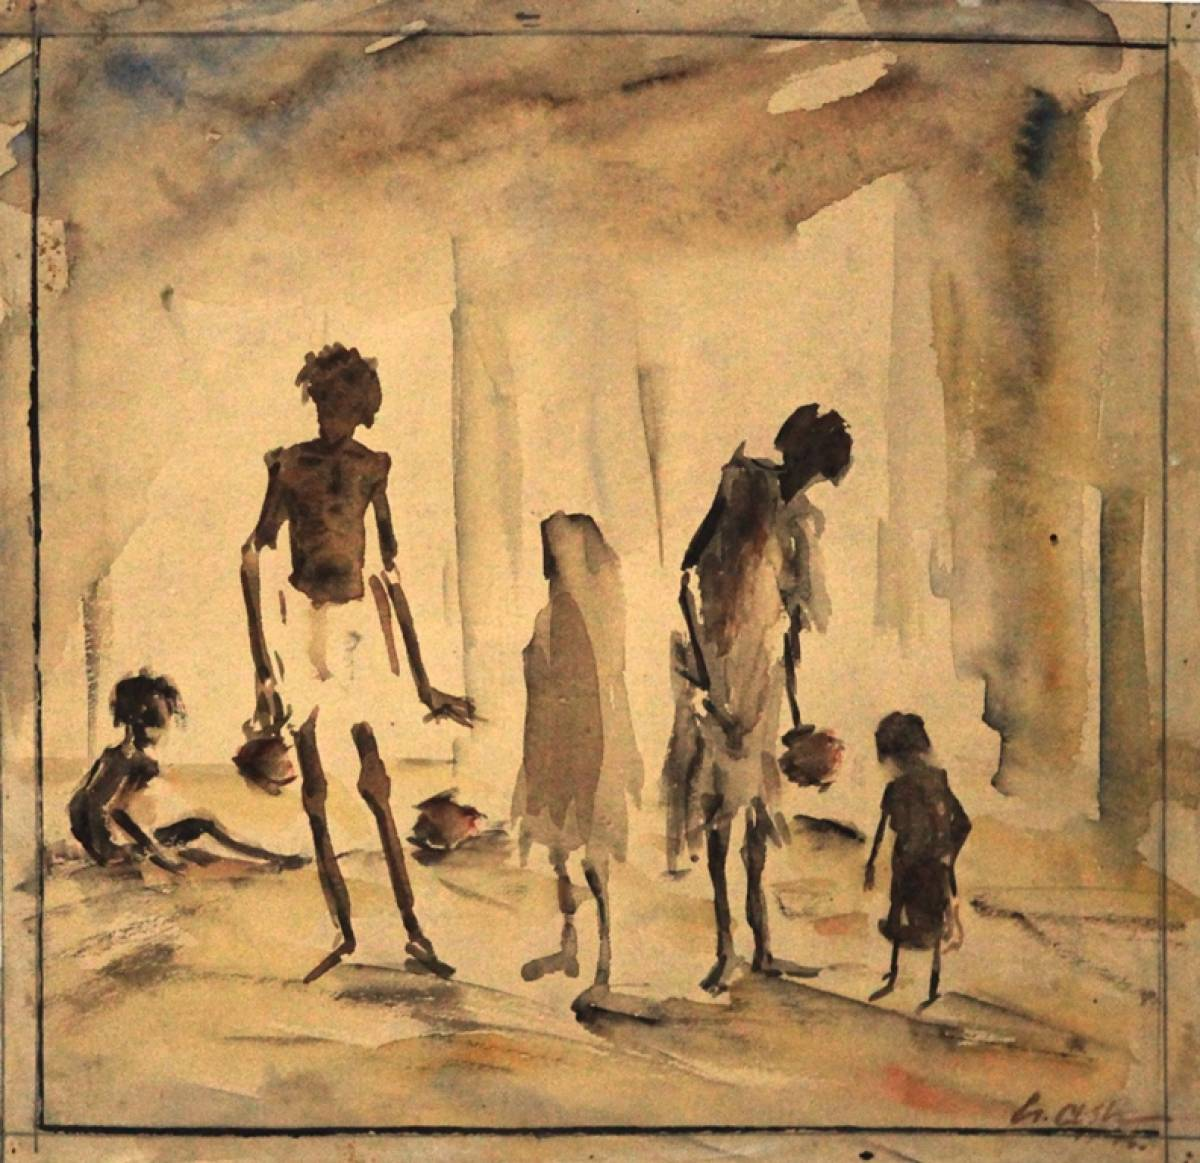 GAJAH GALLERY SINGAPORE EXHIBITS 21 IMPORTANT WATERCOLORS ON THE 1943 BENGAL FAMINE